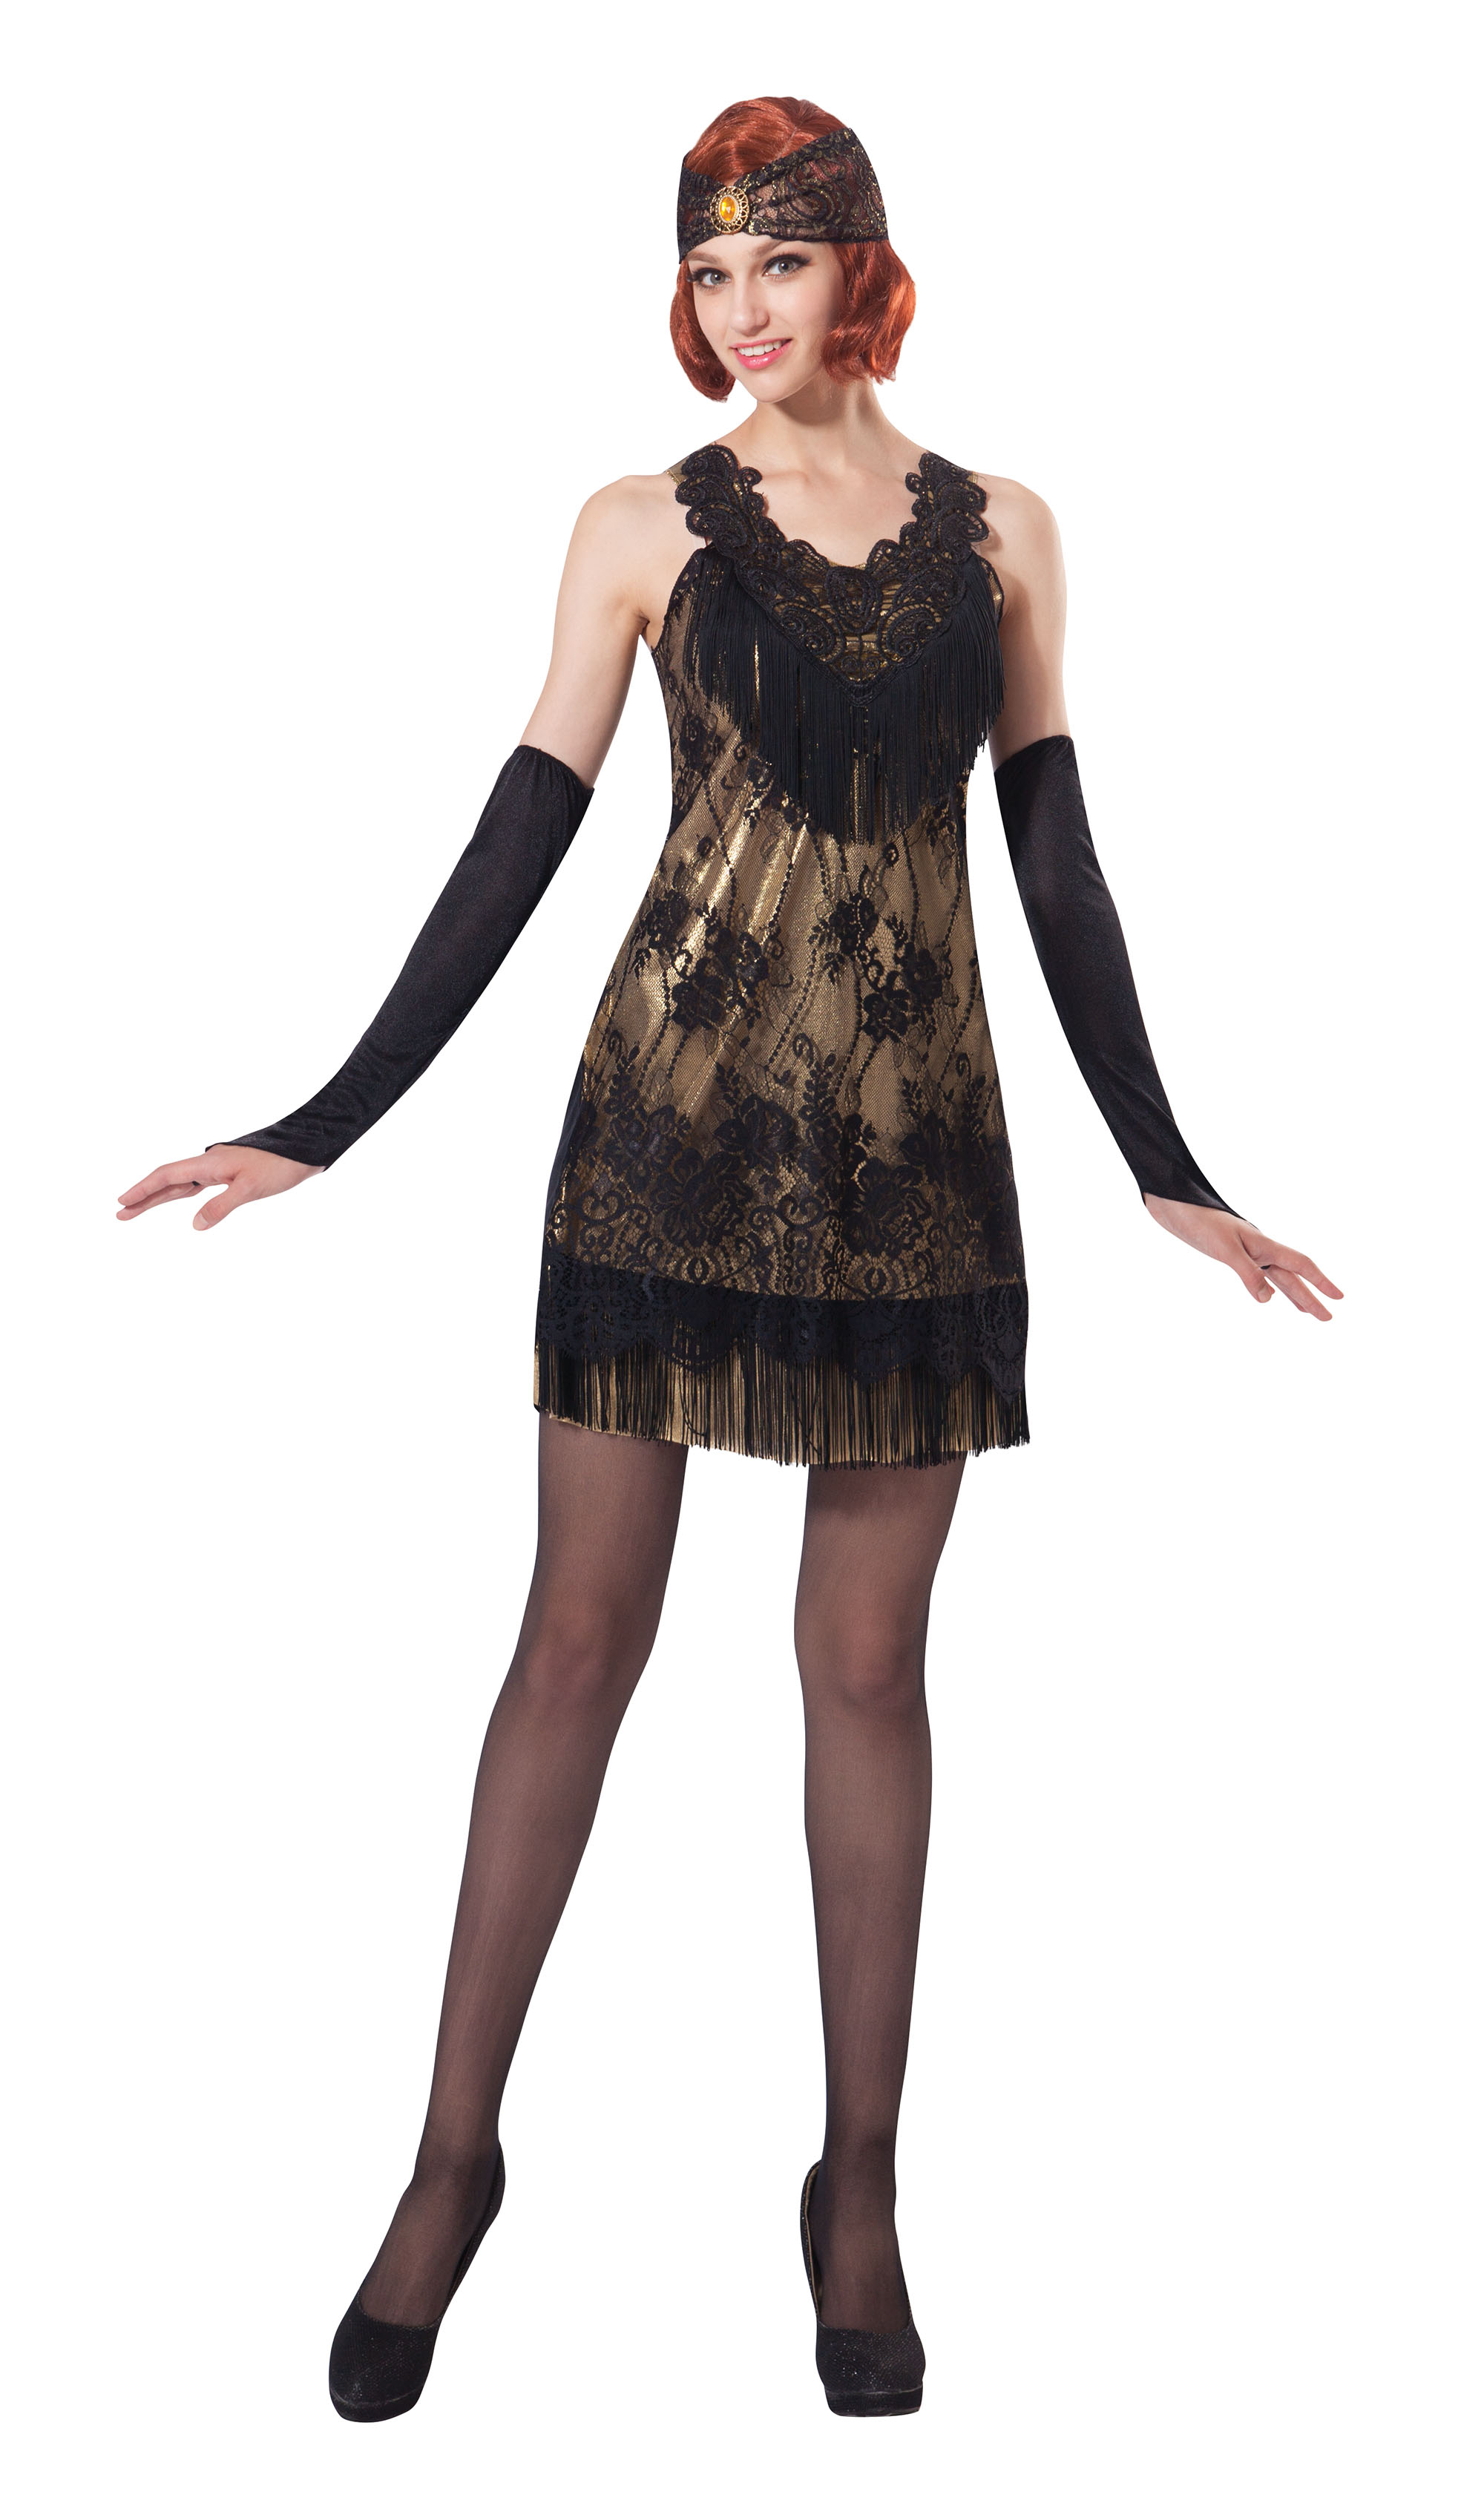 Ladies Womens Black & Gold Lace Flapper Fancy Dress Costume 20s Outfit UK 10-14